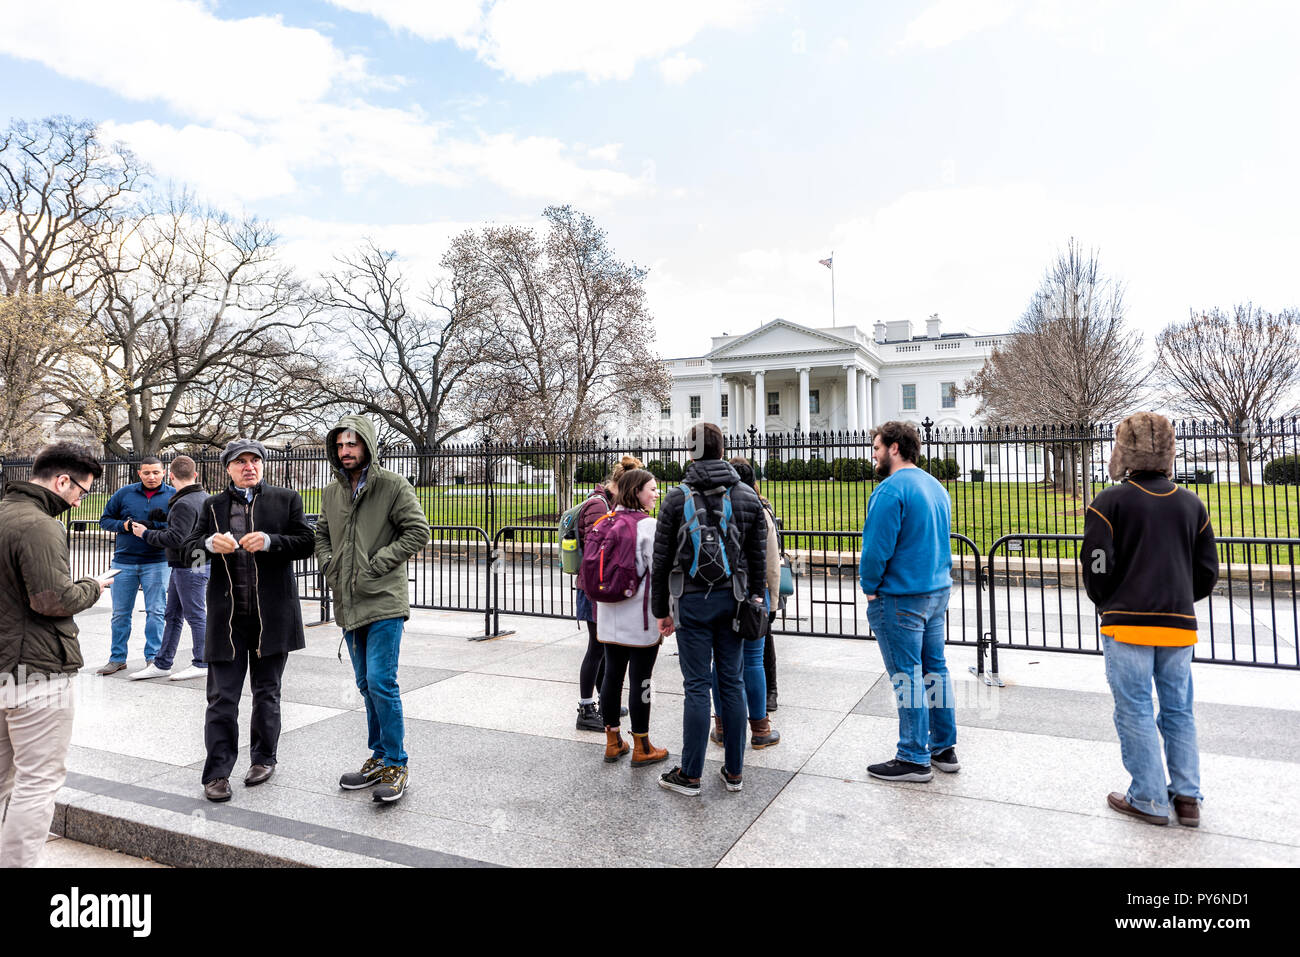 Washington DC, USA - March 9, 2018: Crowd of many people at White House President building in capital city of United States in cold winter, standing o Stock Photo